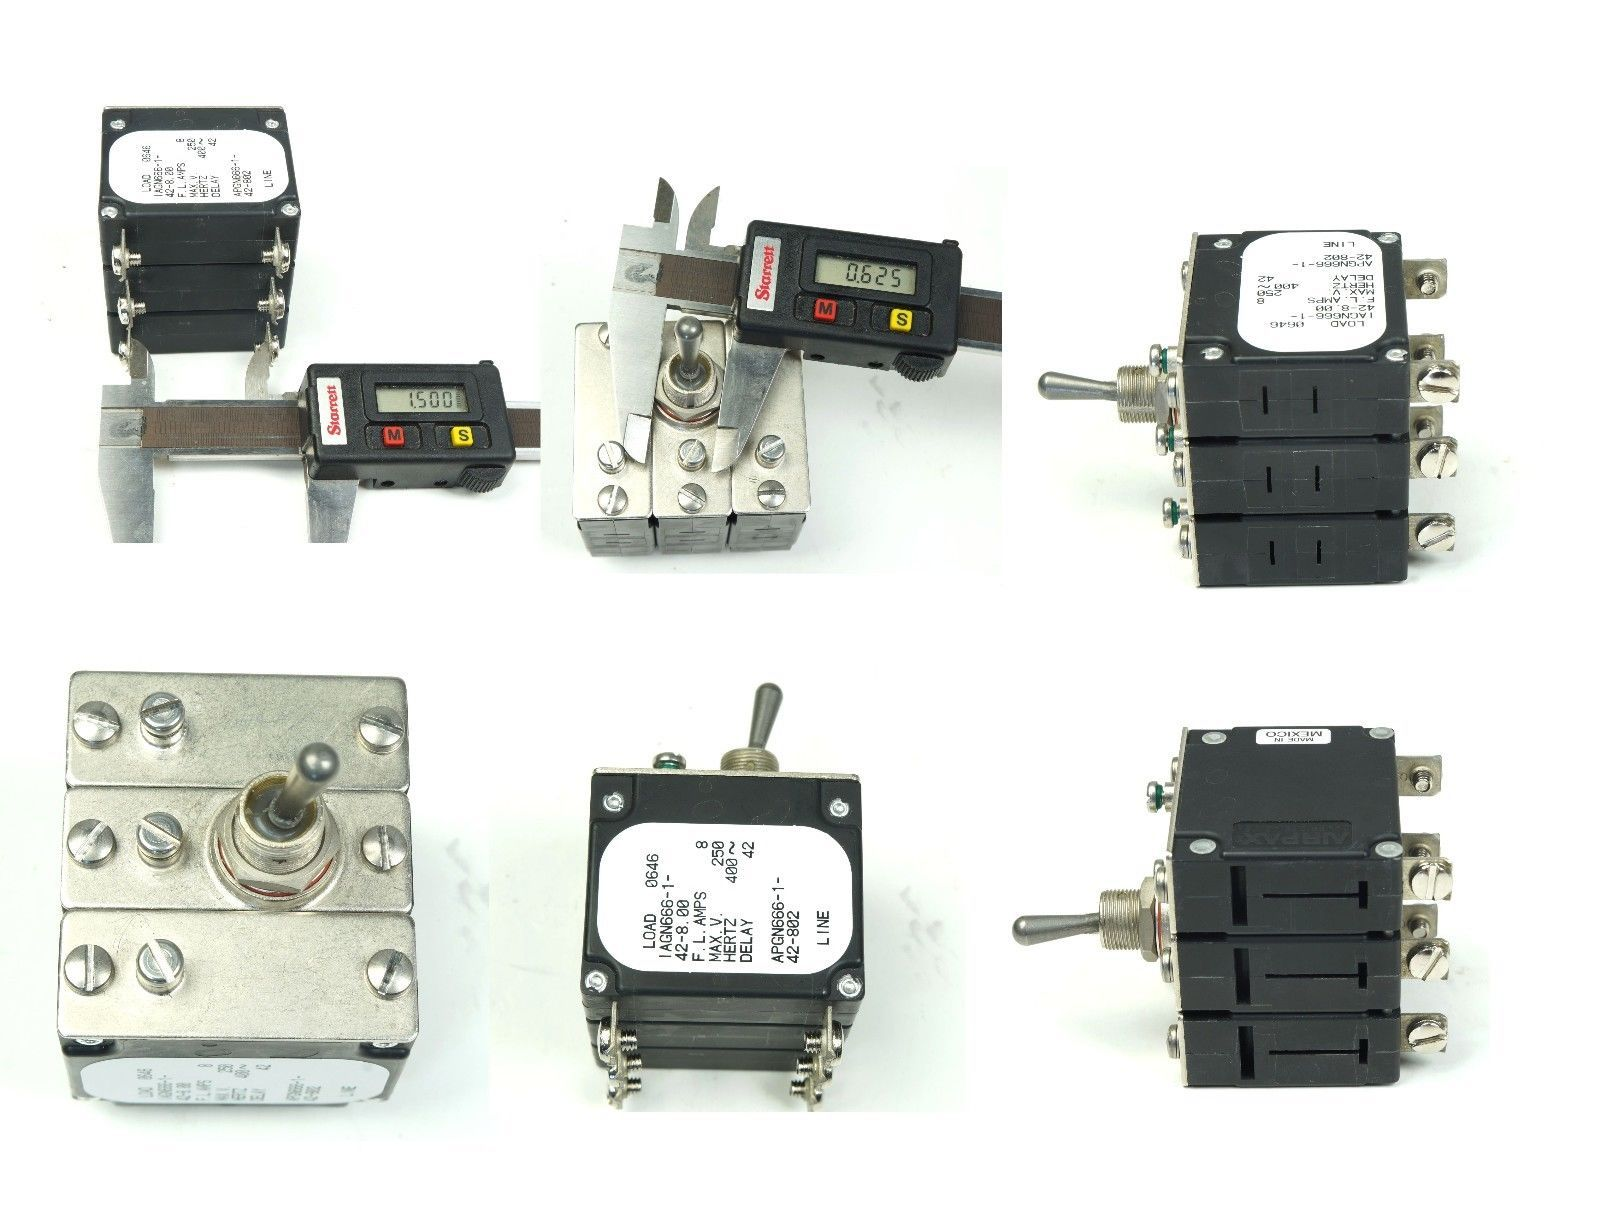 Airpax Iagn666 1 42 8 Sealed Toggle Circuit And 39 Similar Items Square D Qob115 Bolt On Breaker 1pole 120vac 15 Amp 400 Hz 3 Pole